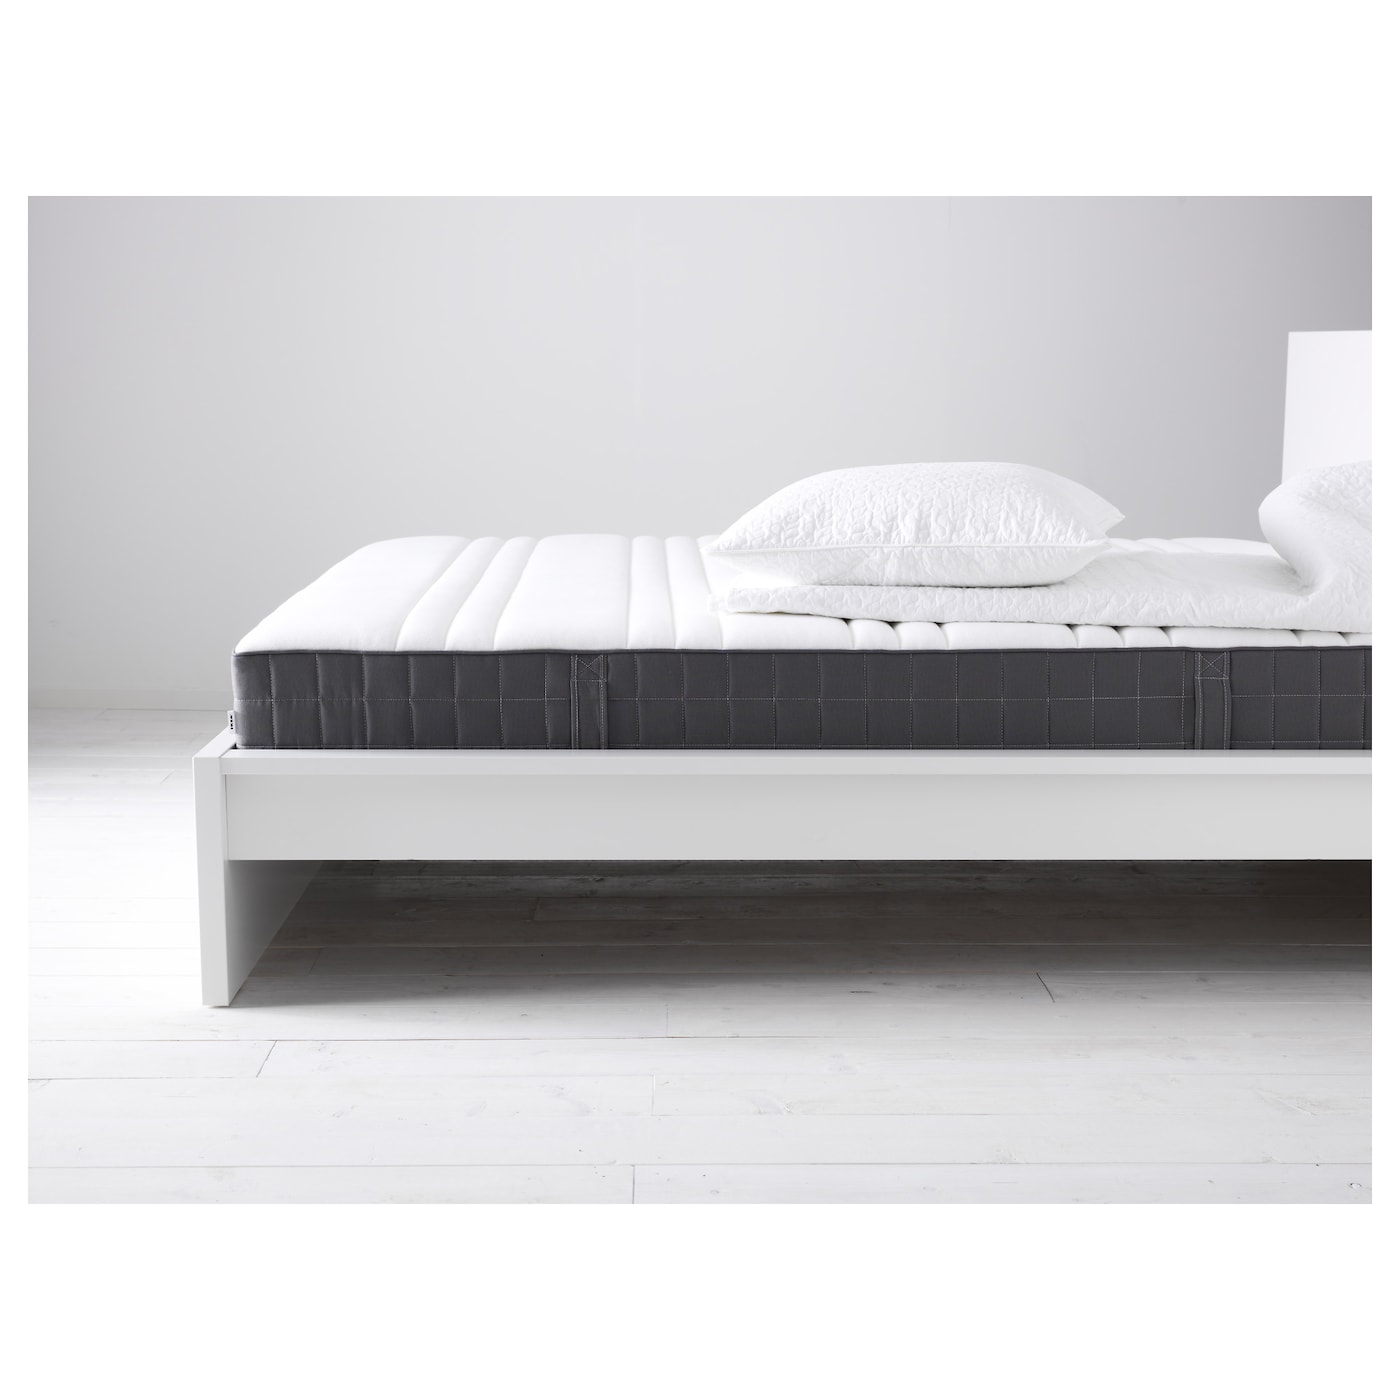 h v g pocket sprung mattress firm dark grey 120x190 cm ikea. Black Bedroom Furniture Sets. Home Design Ideas